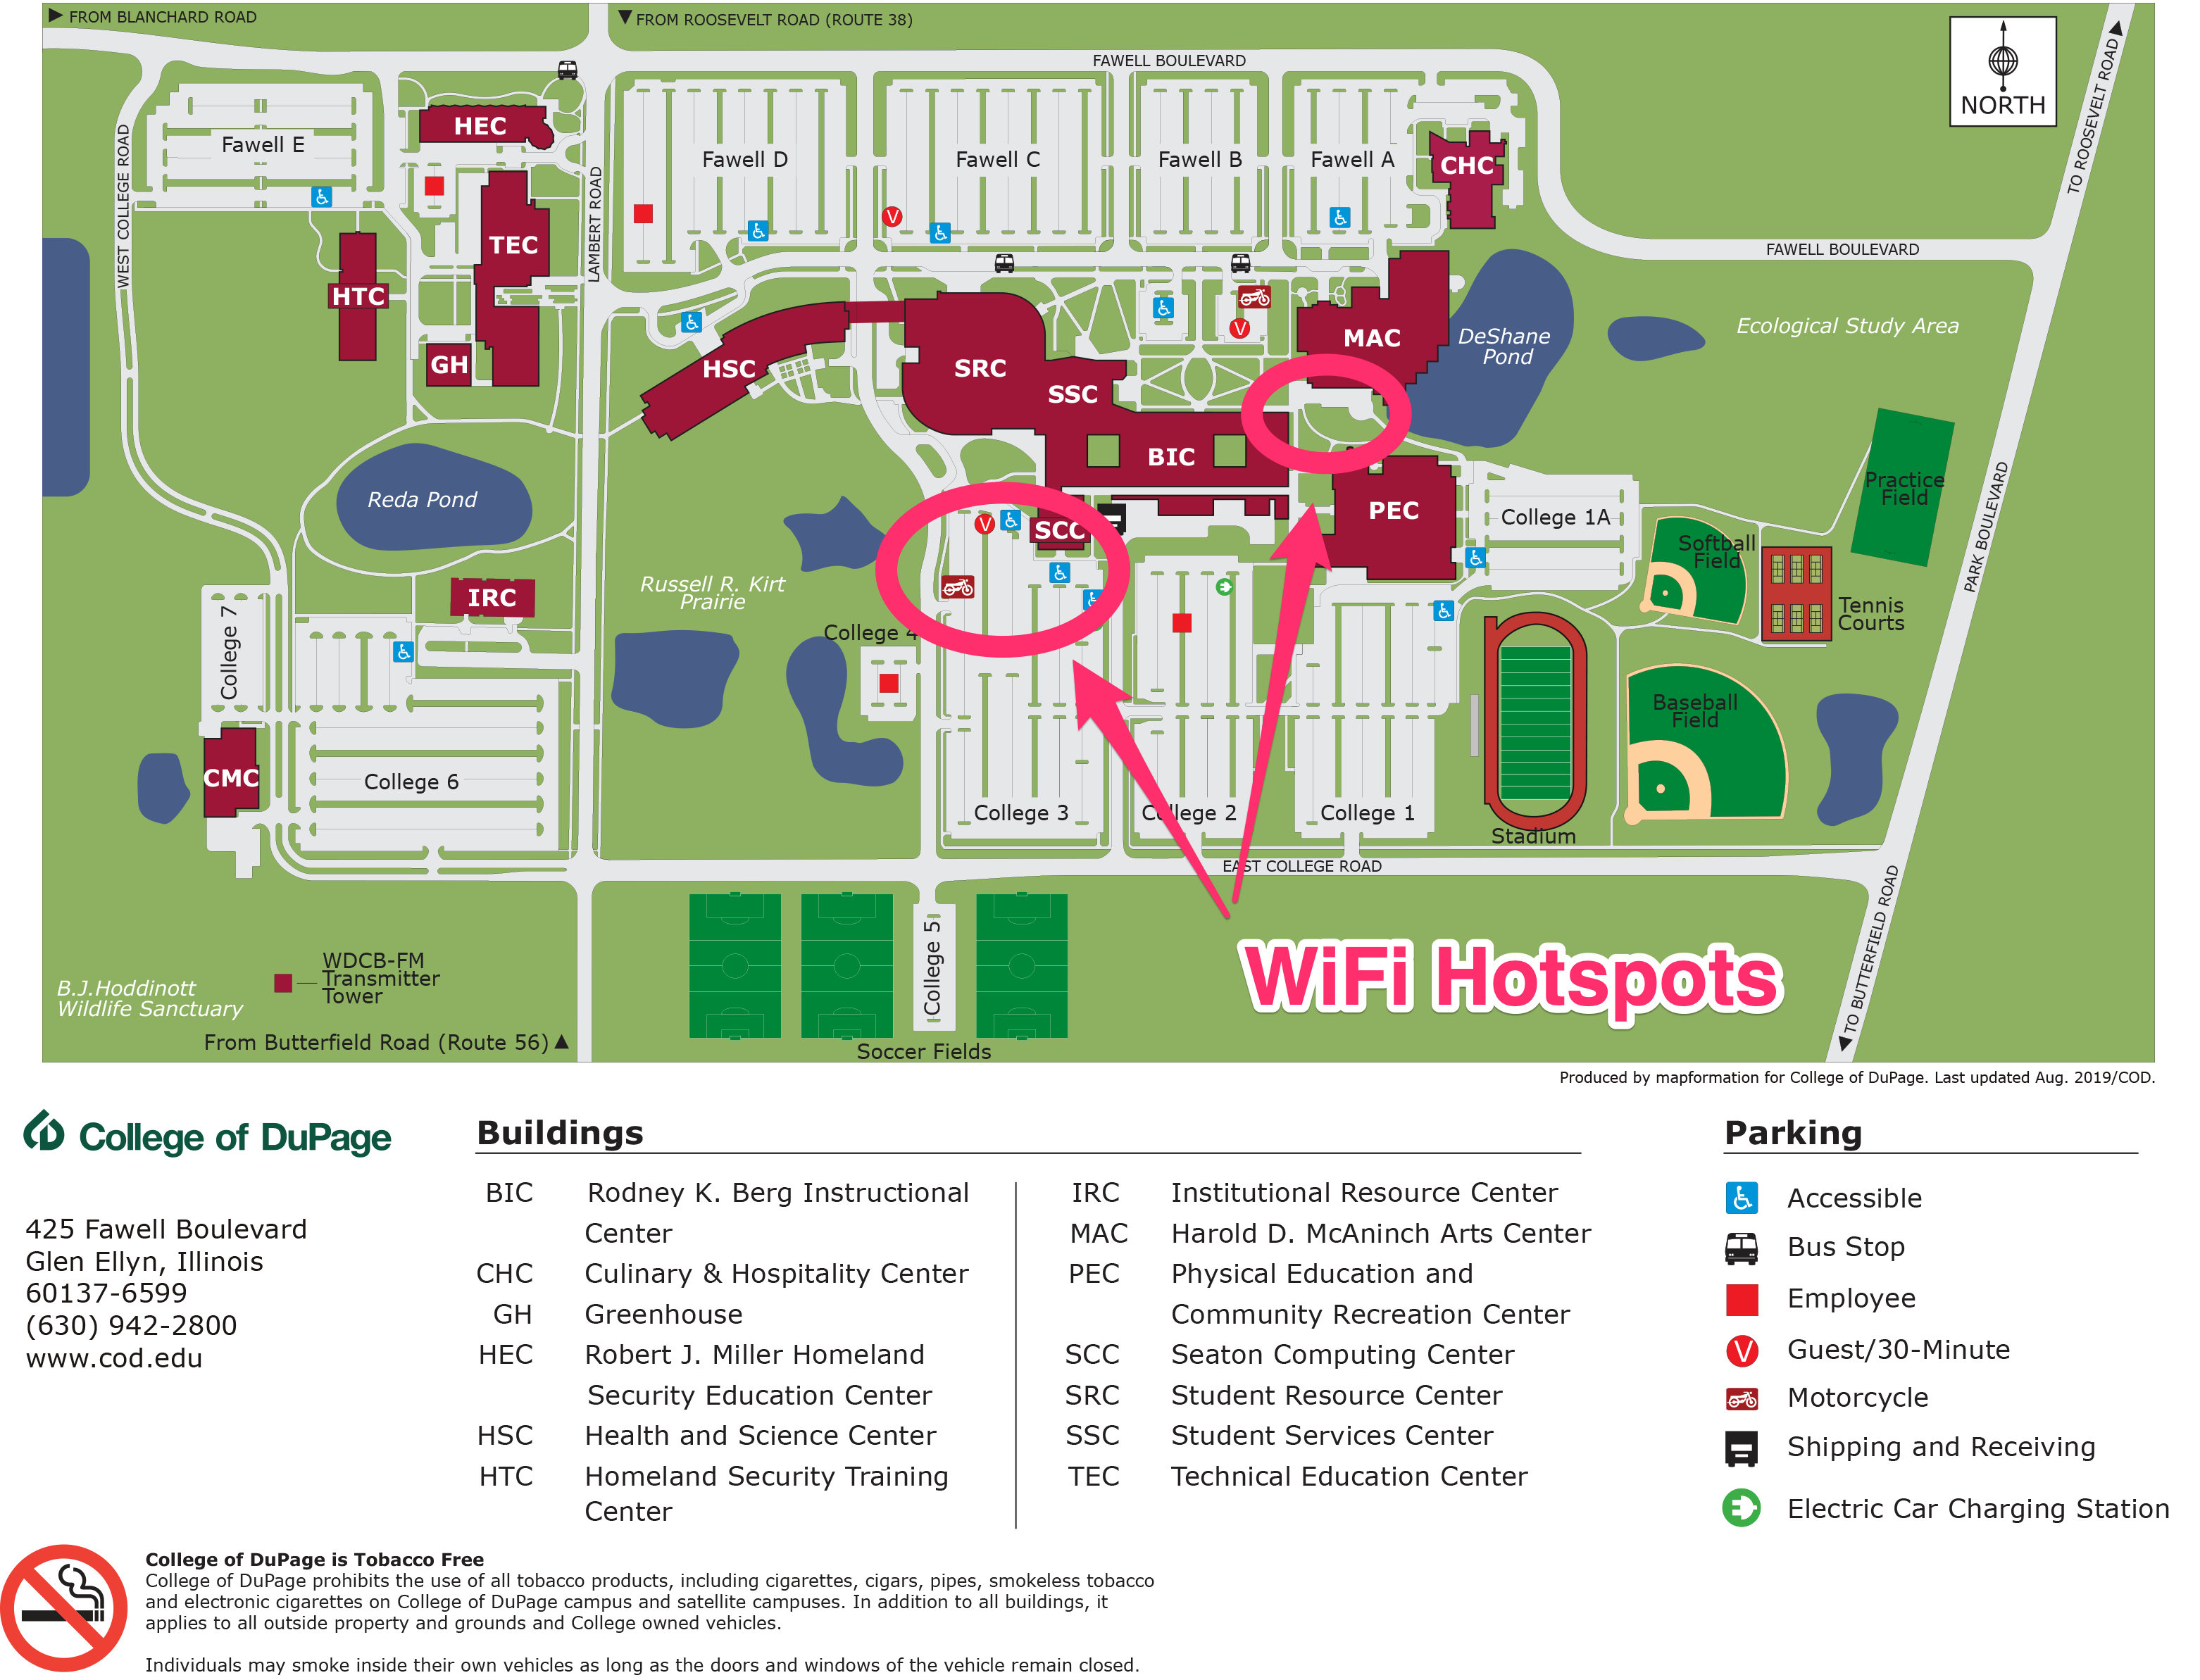 Campus maps showing outdoor public WiFi hotspots south of the SRC and MAC buildings.